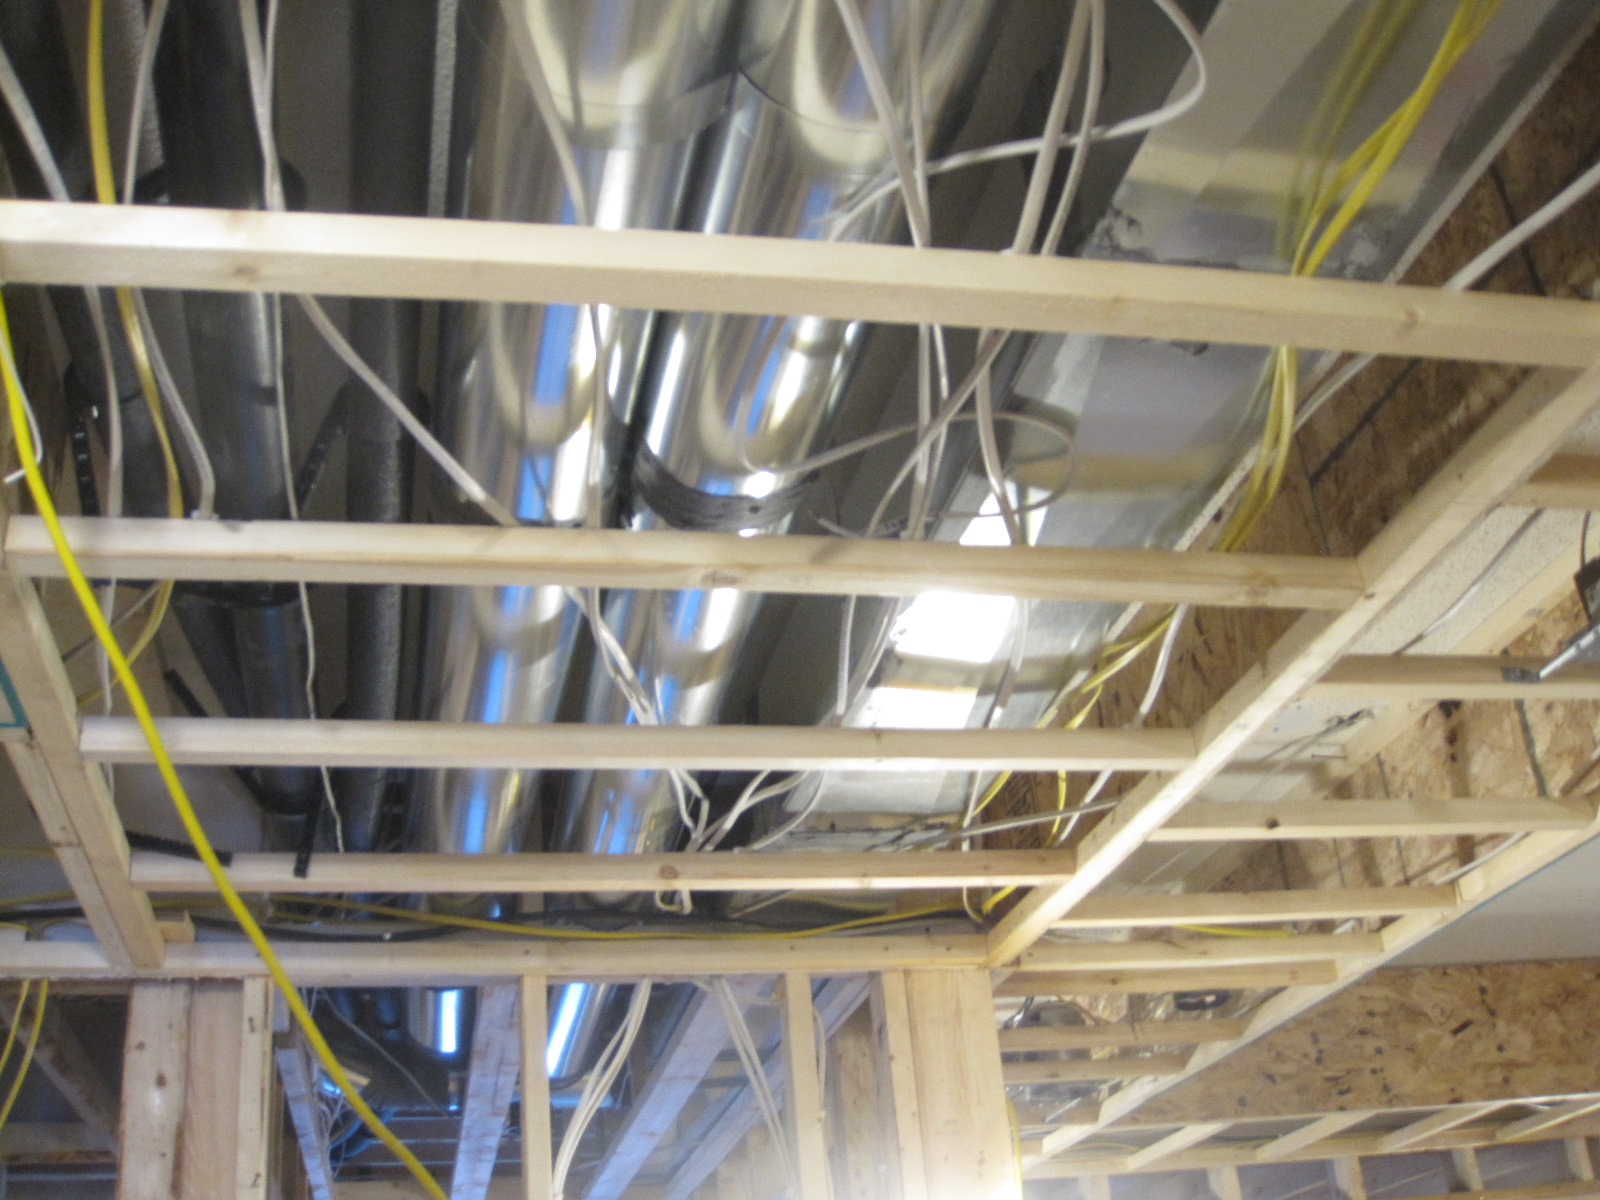 Interior ceiling: ducts and wiring hidden by ceiling soffits